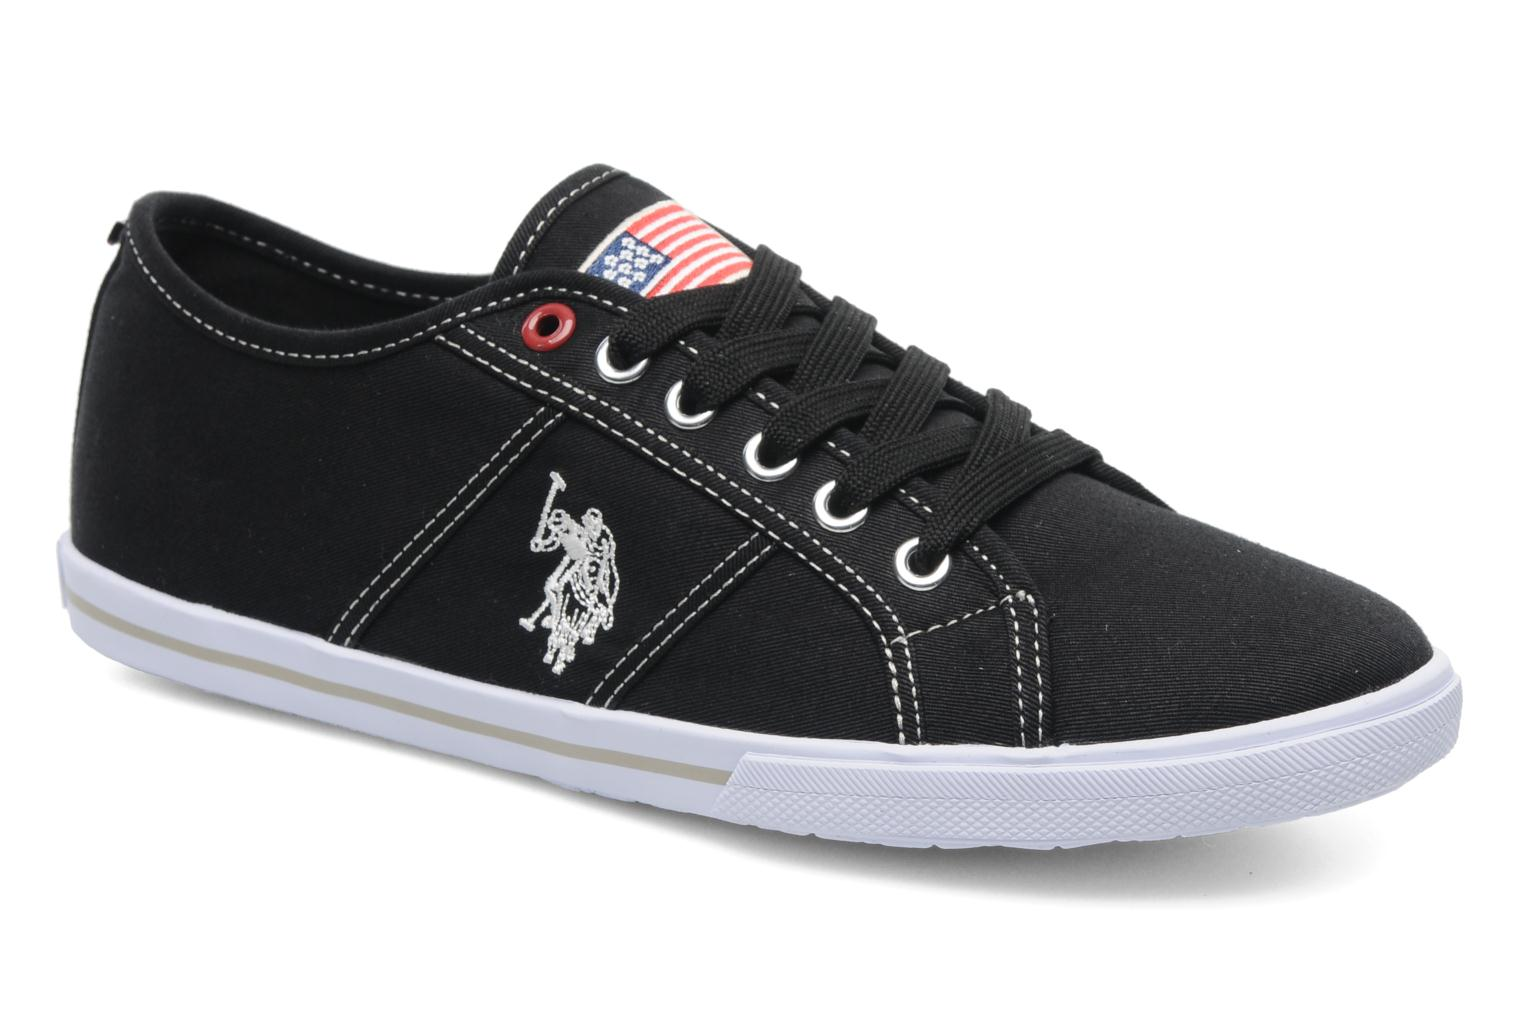 Sneakers Gore by U.S Polo Assn.